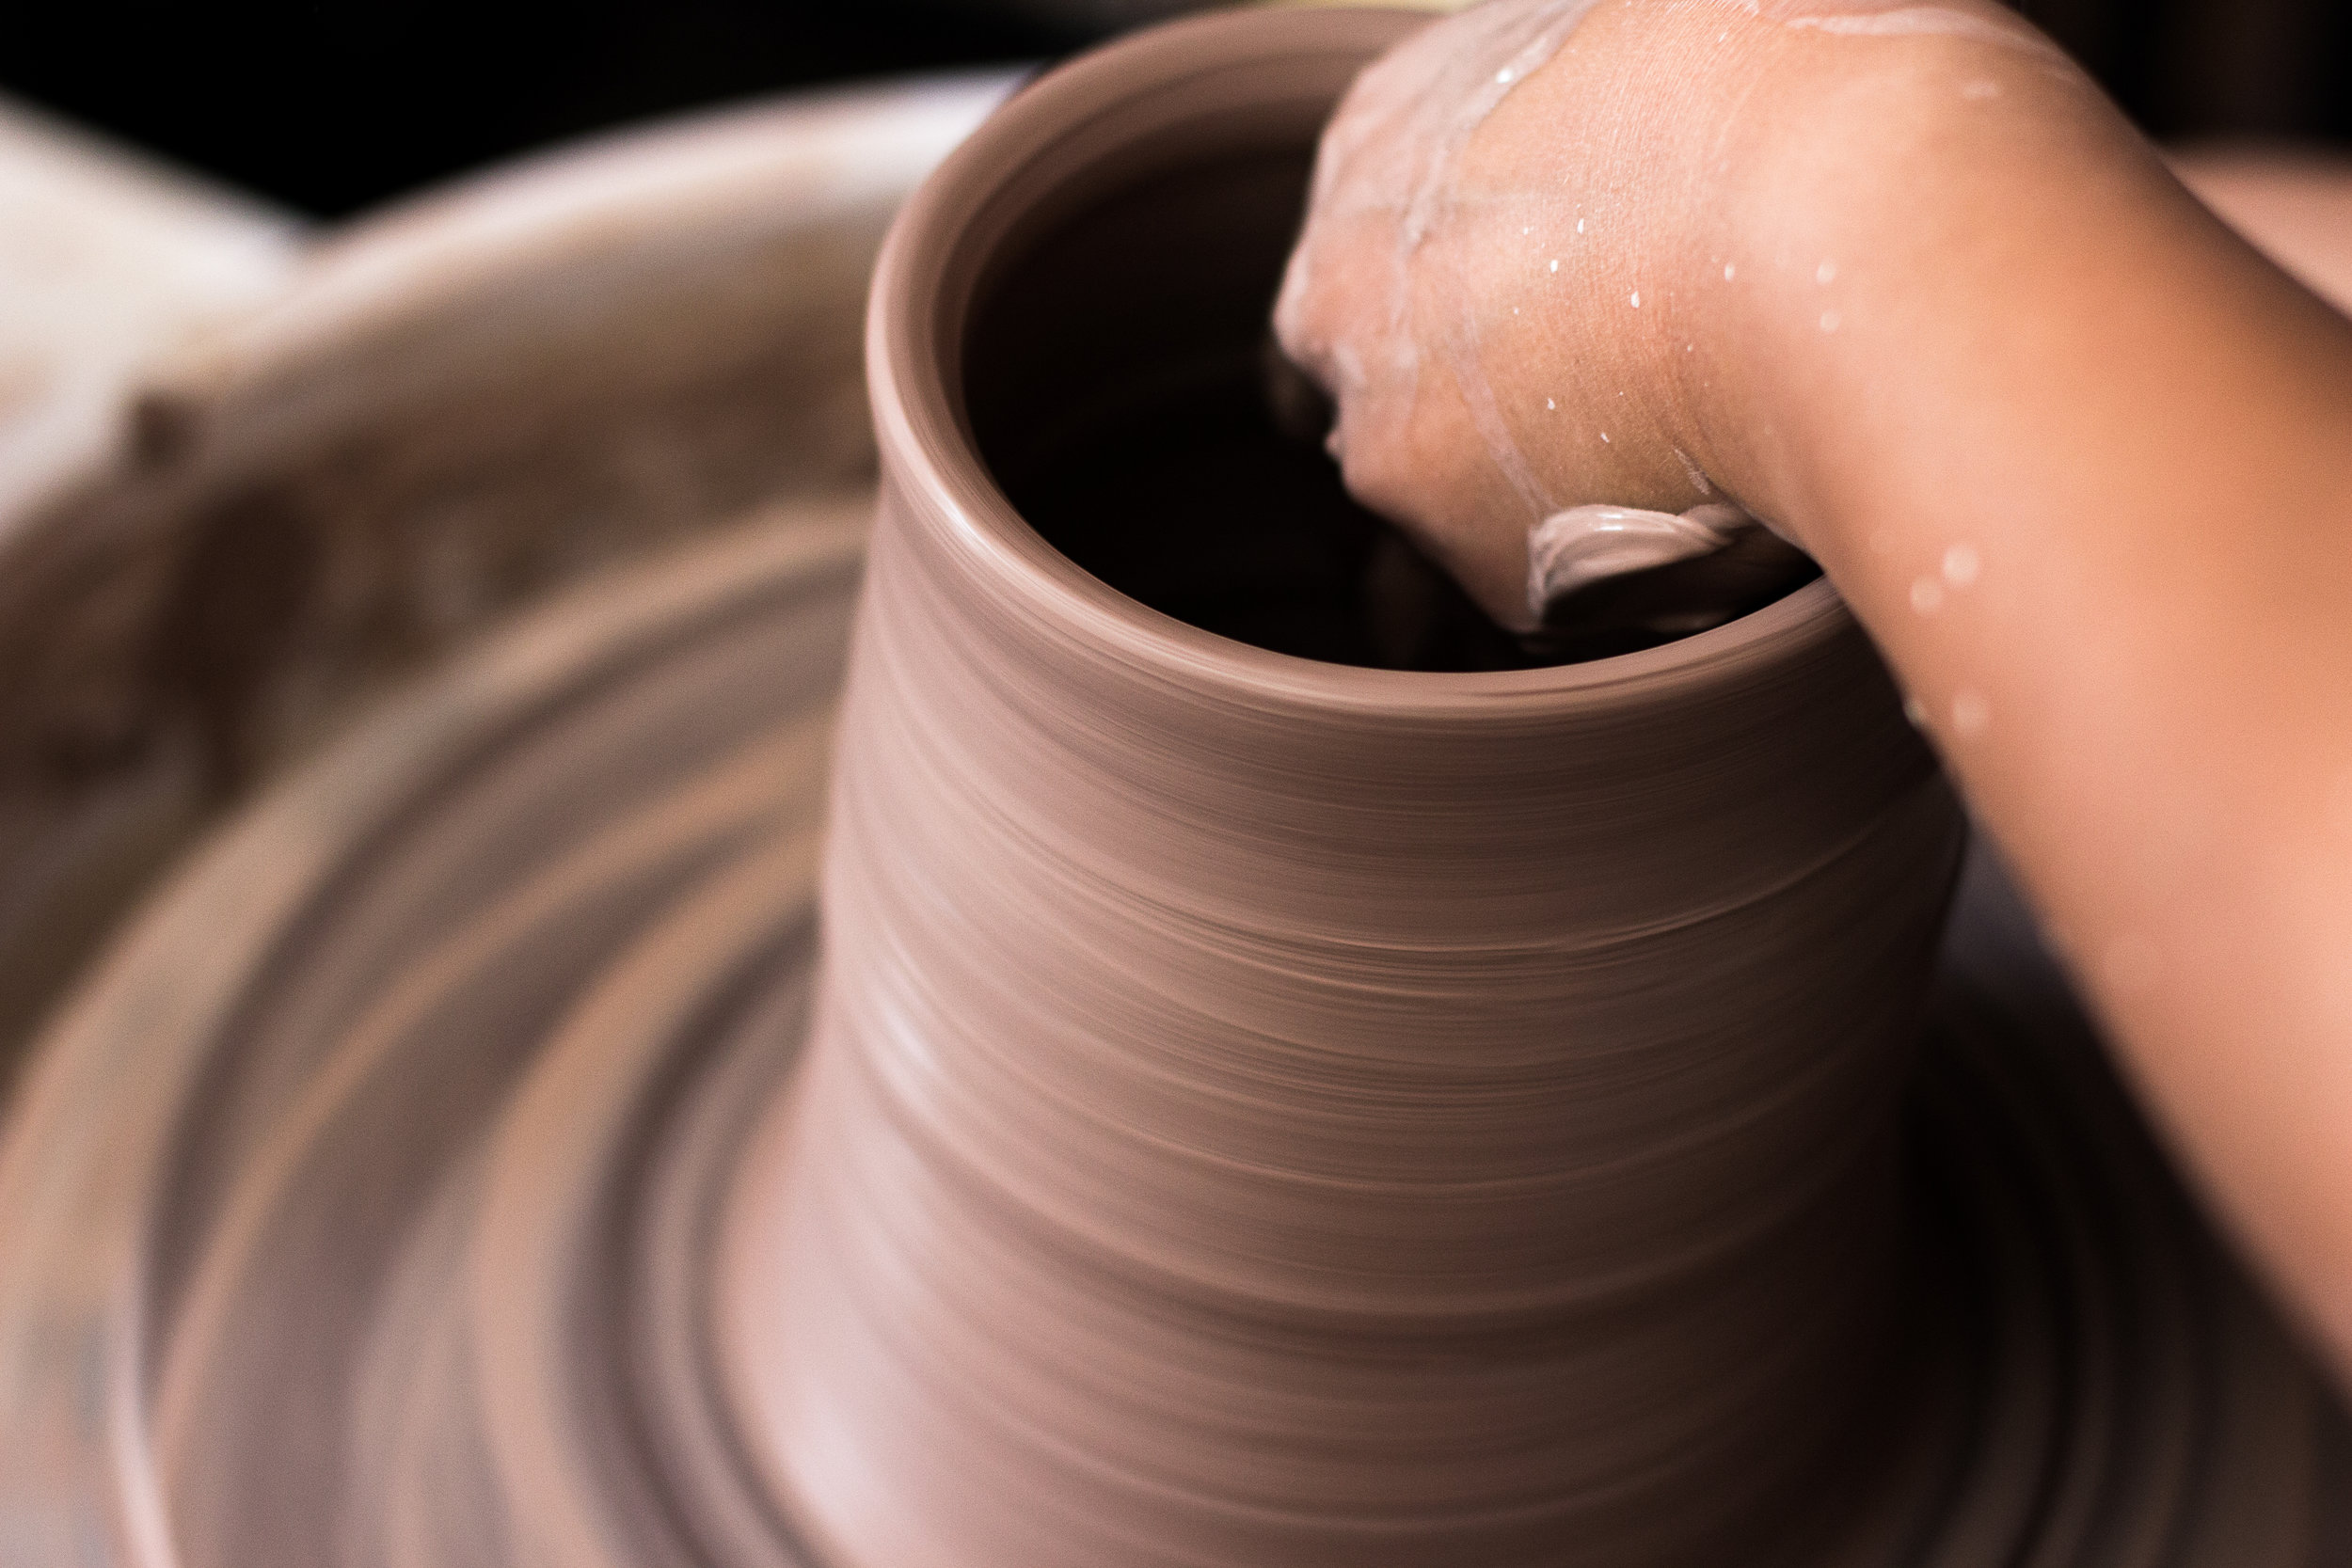 Throwing stoneware. Photograph by Jack Li.